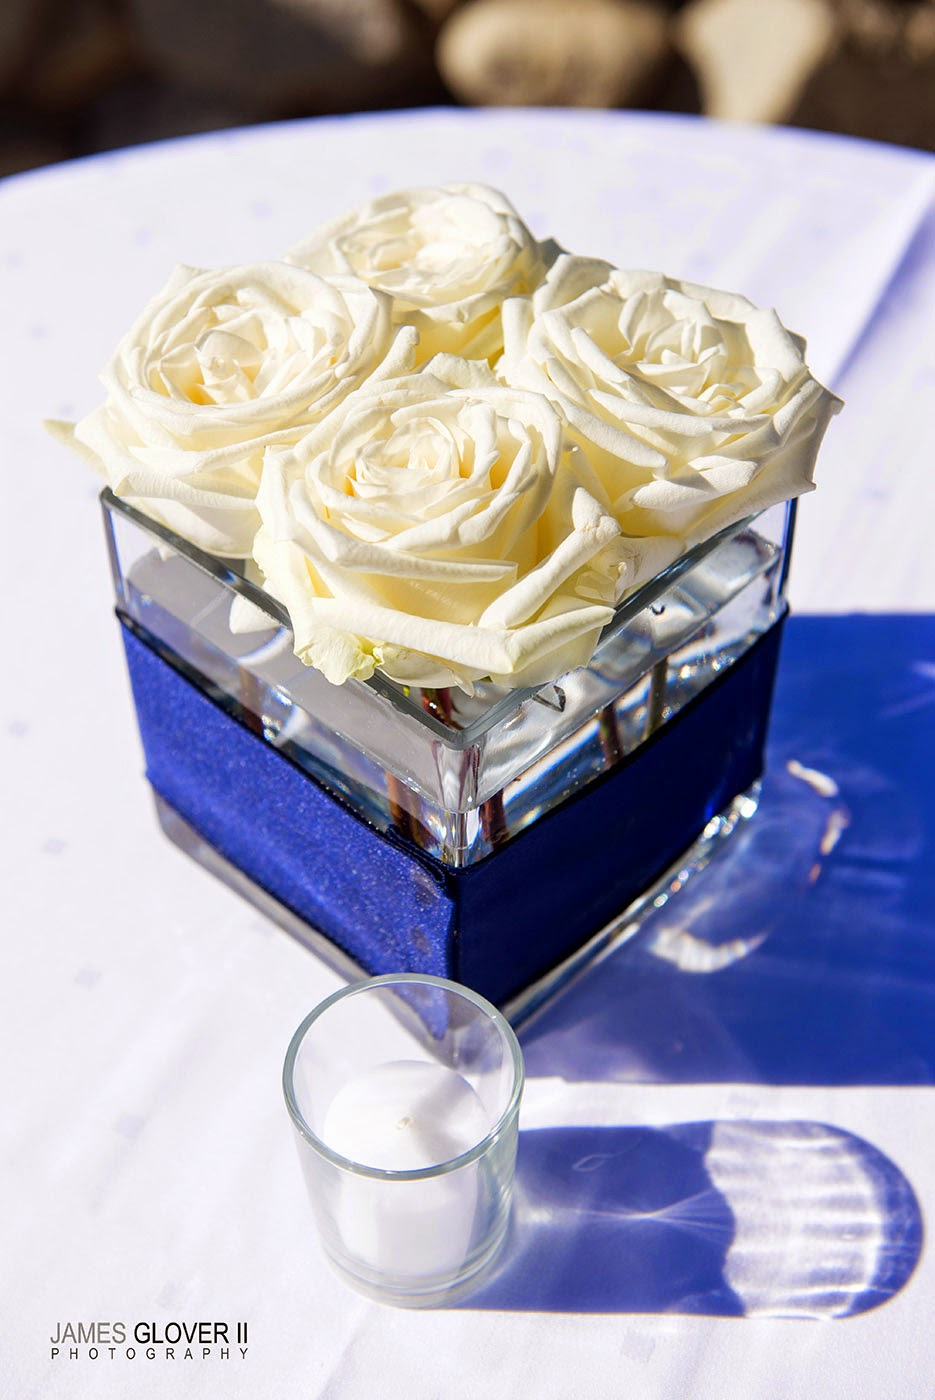 White rose mini centerpieces by B&B Designs | James Glover Photography | Take the Cake Events